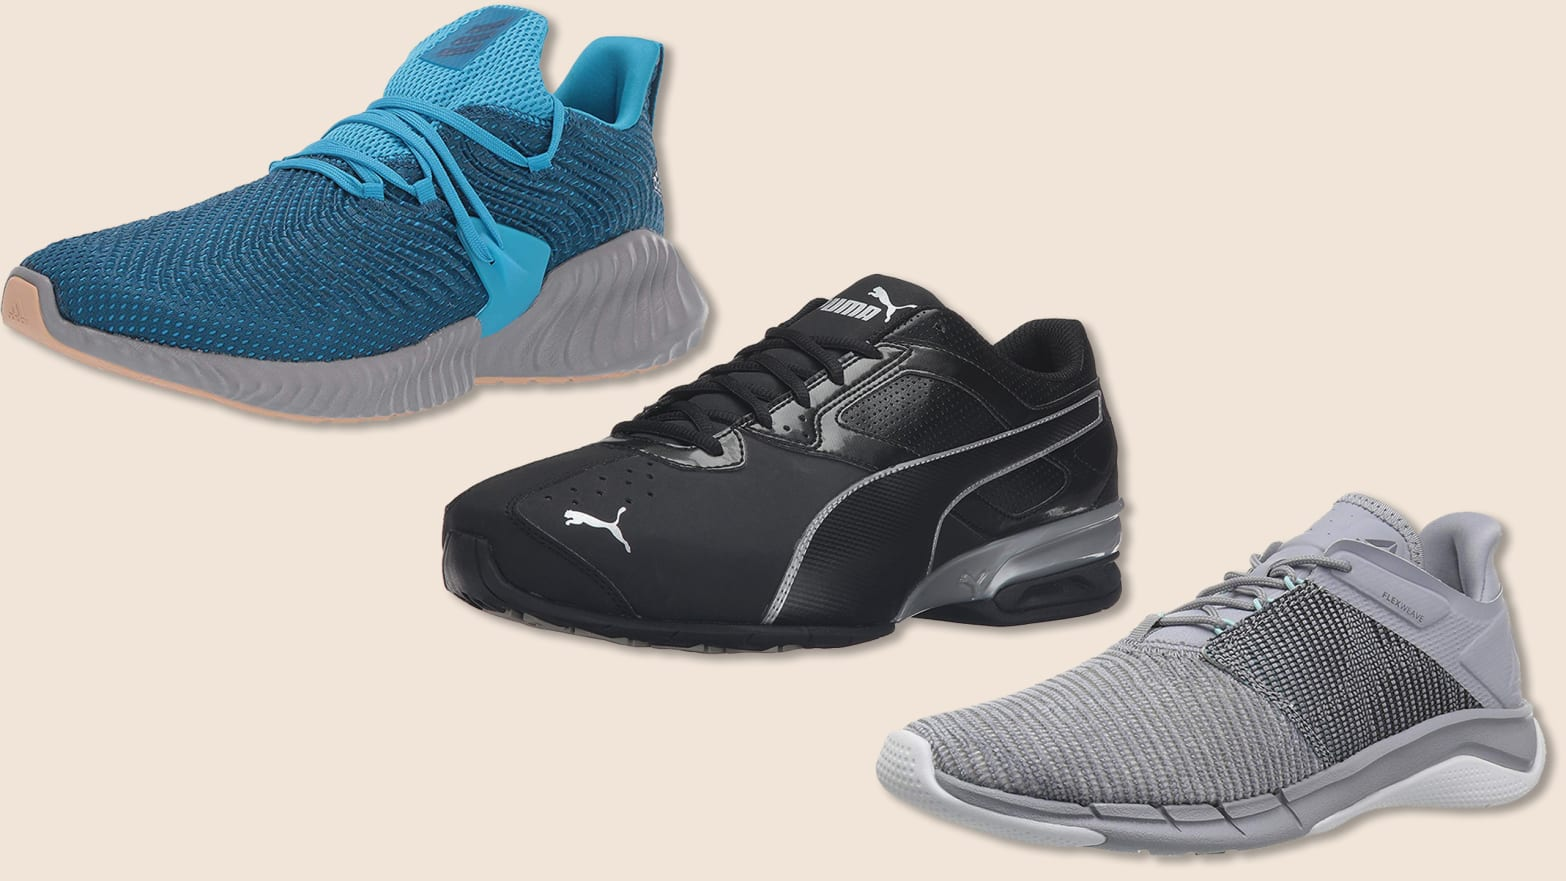 0daf5f8fabb09 PUMA, adidas, Reebok, and Other Top-Rated Shoes Are on Sale Today on ...